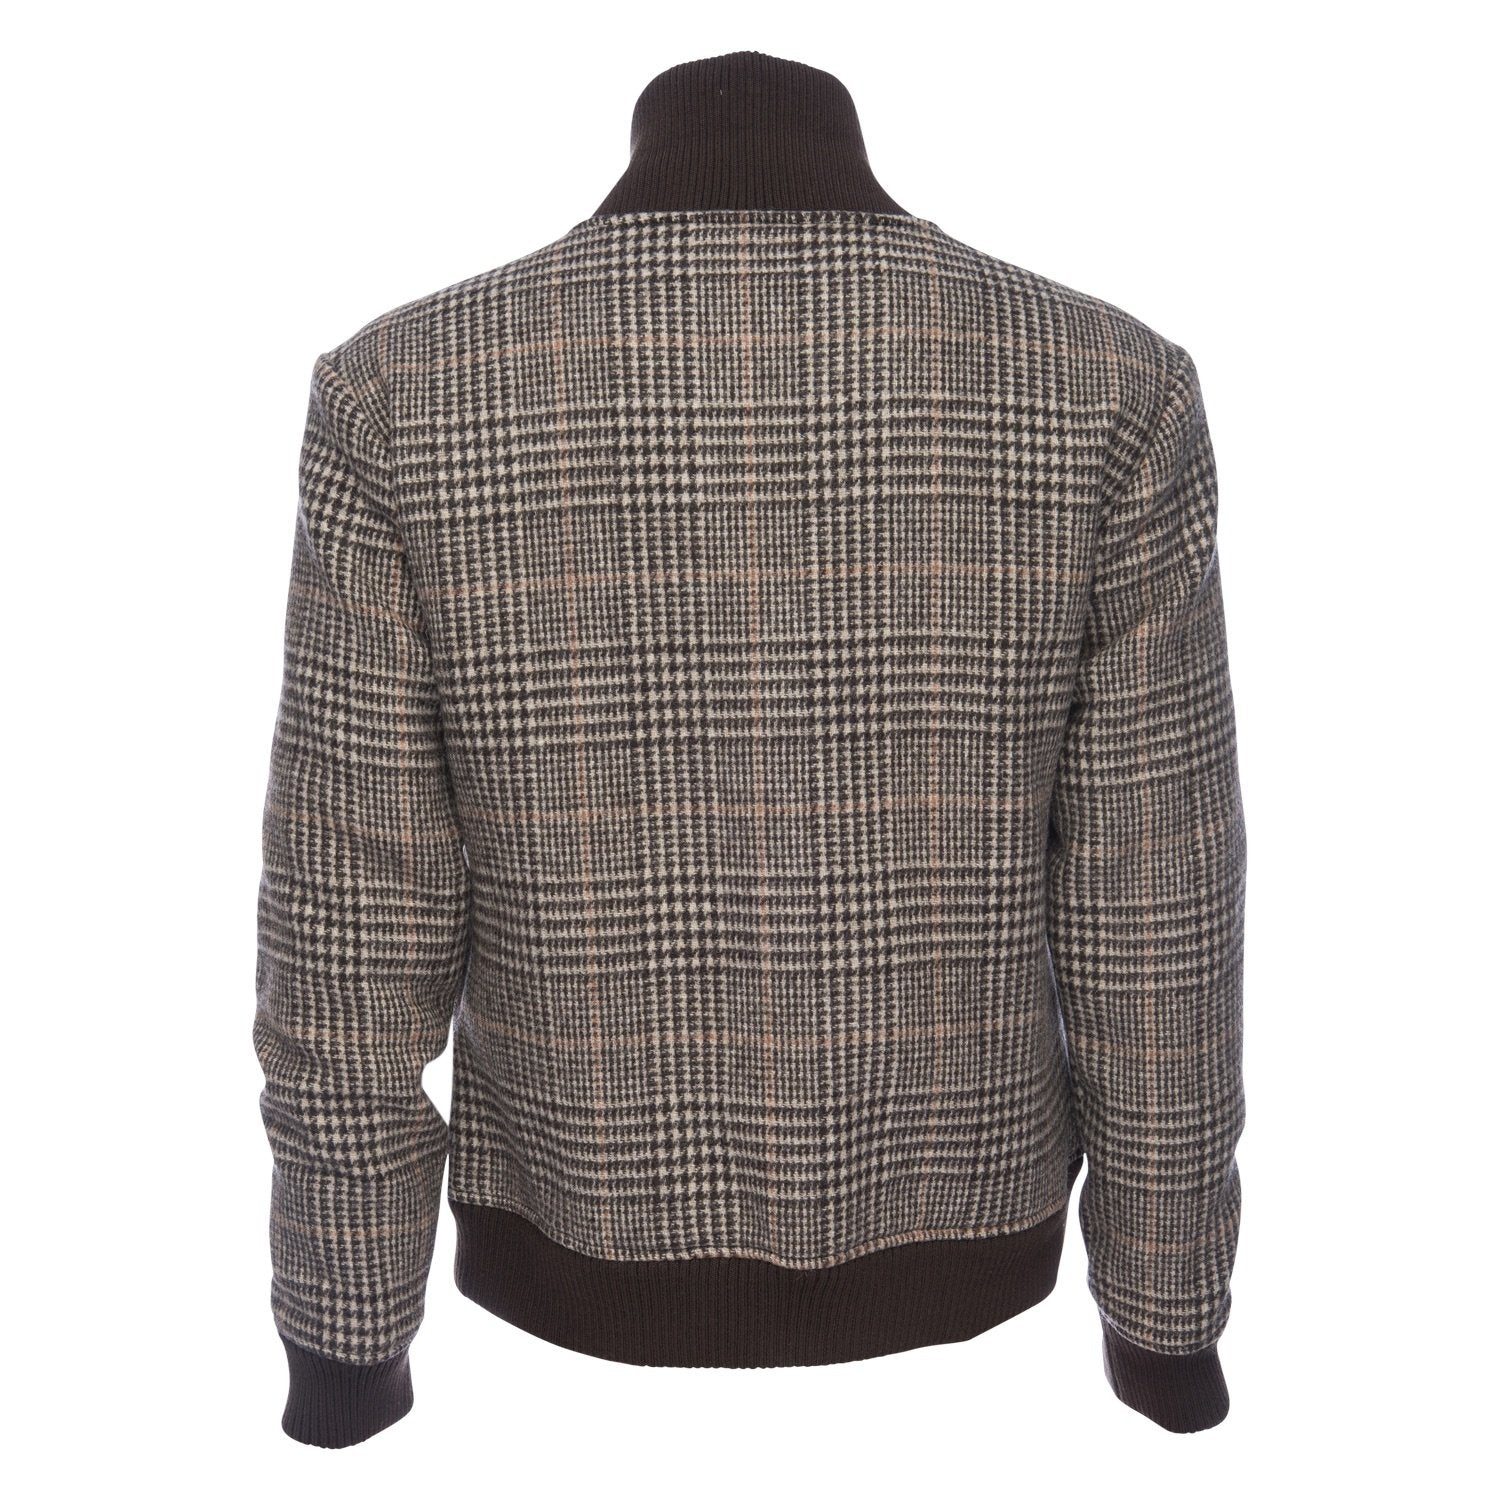 Varsity Jacket in Wool Blend Glen Plaid